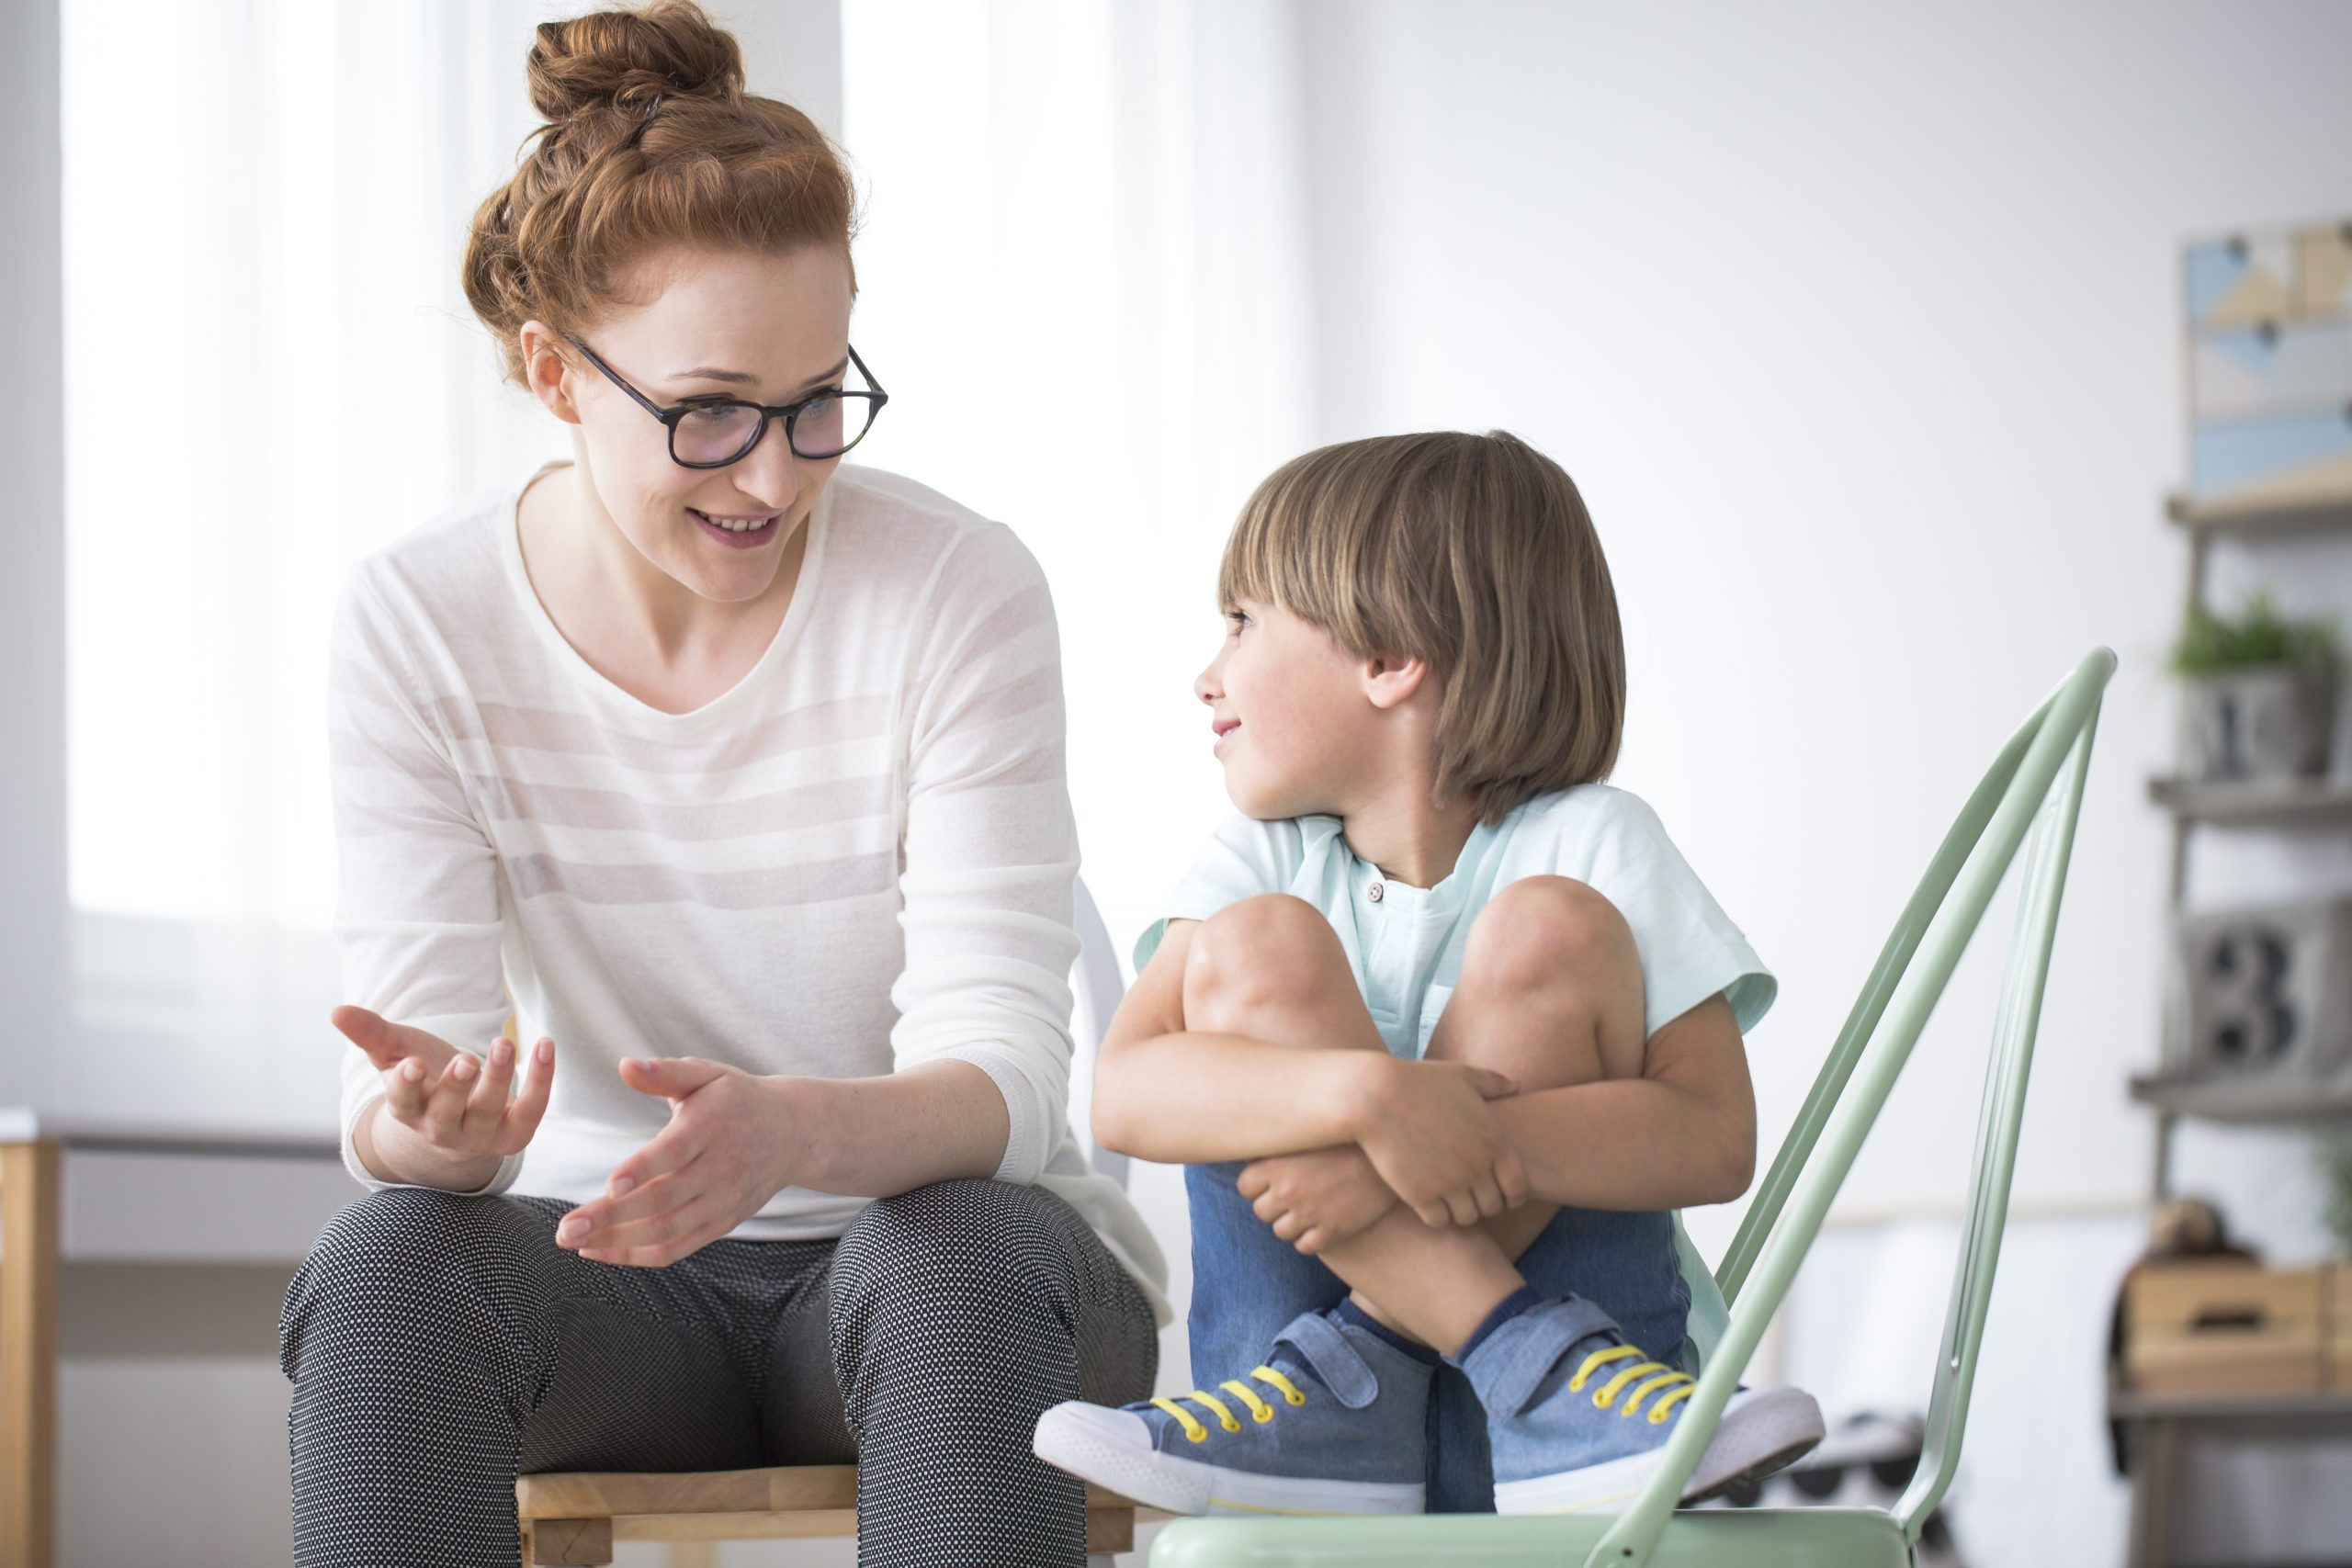 Mother talking to her smiling son sitting on green chair about school